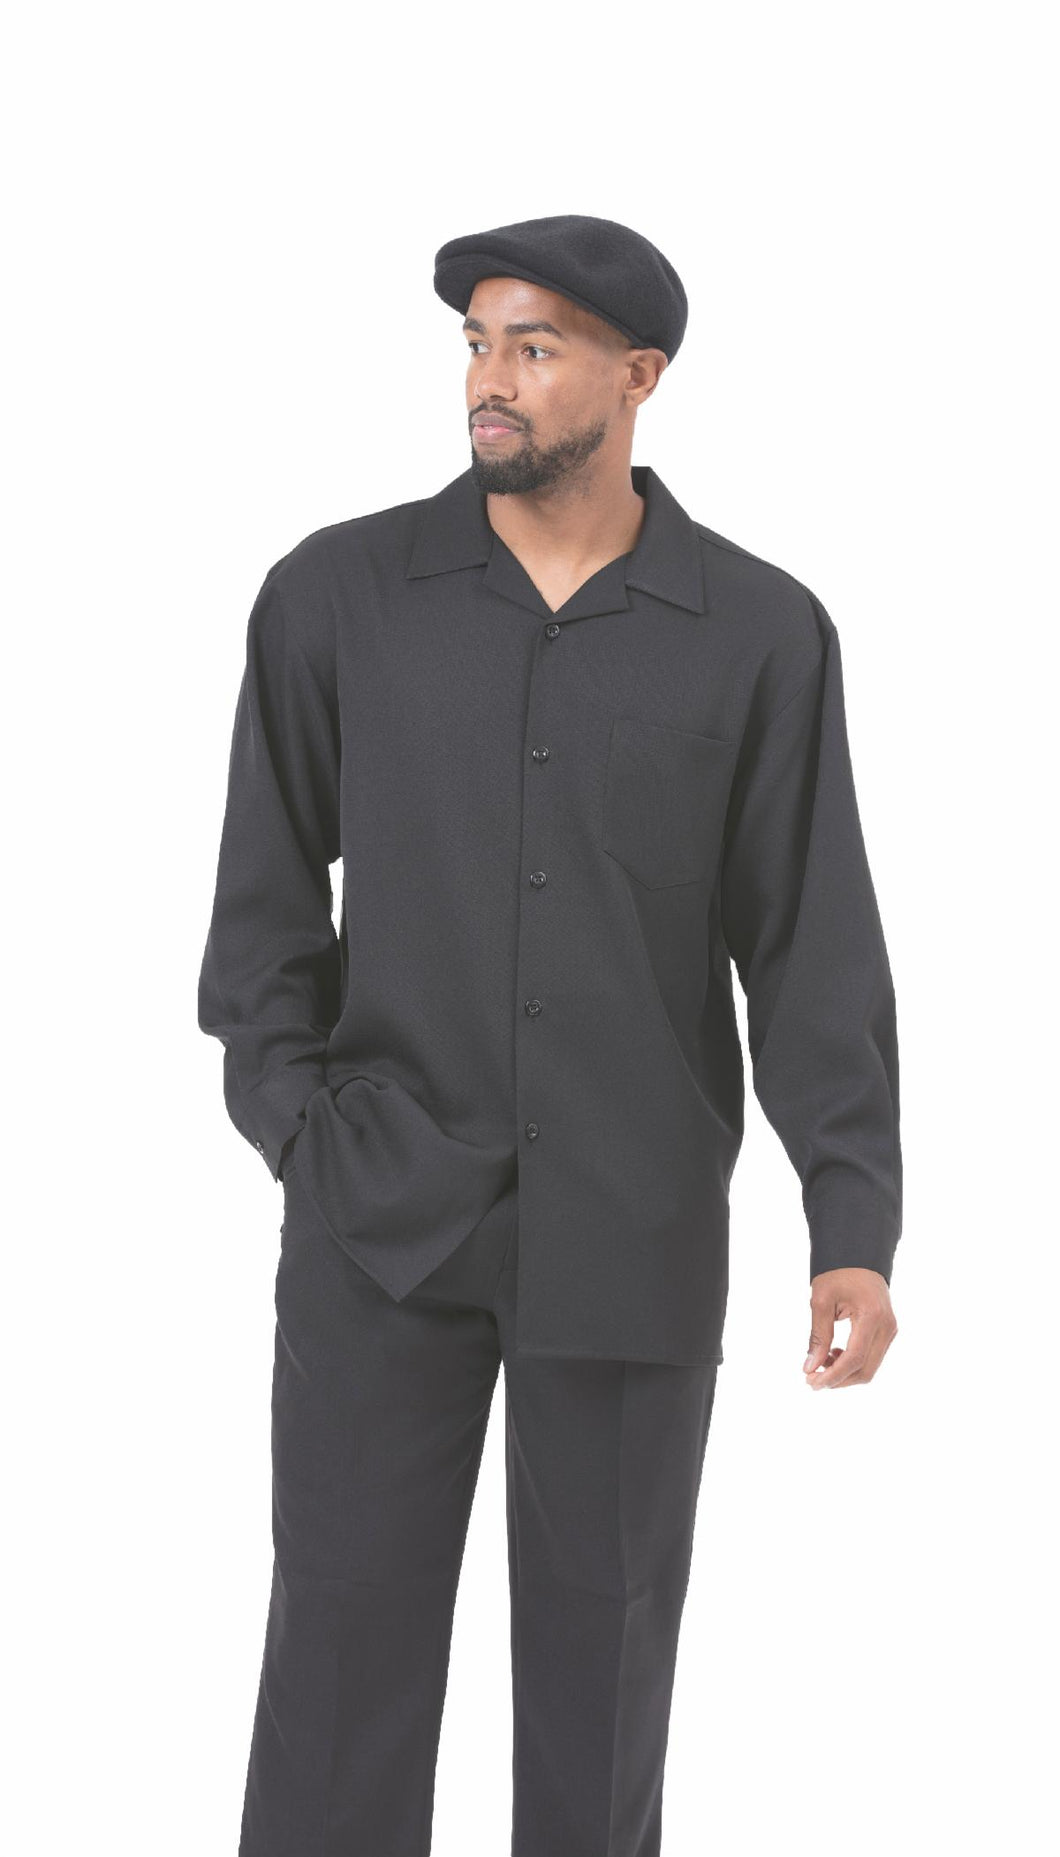 1641 Montique mens Leisure suit Black